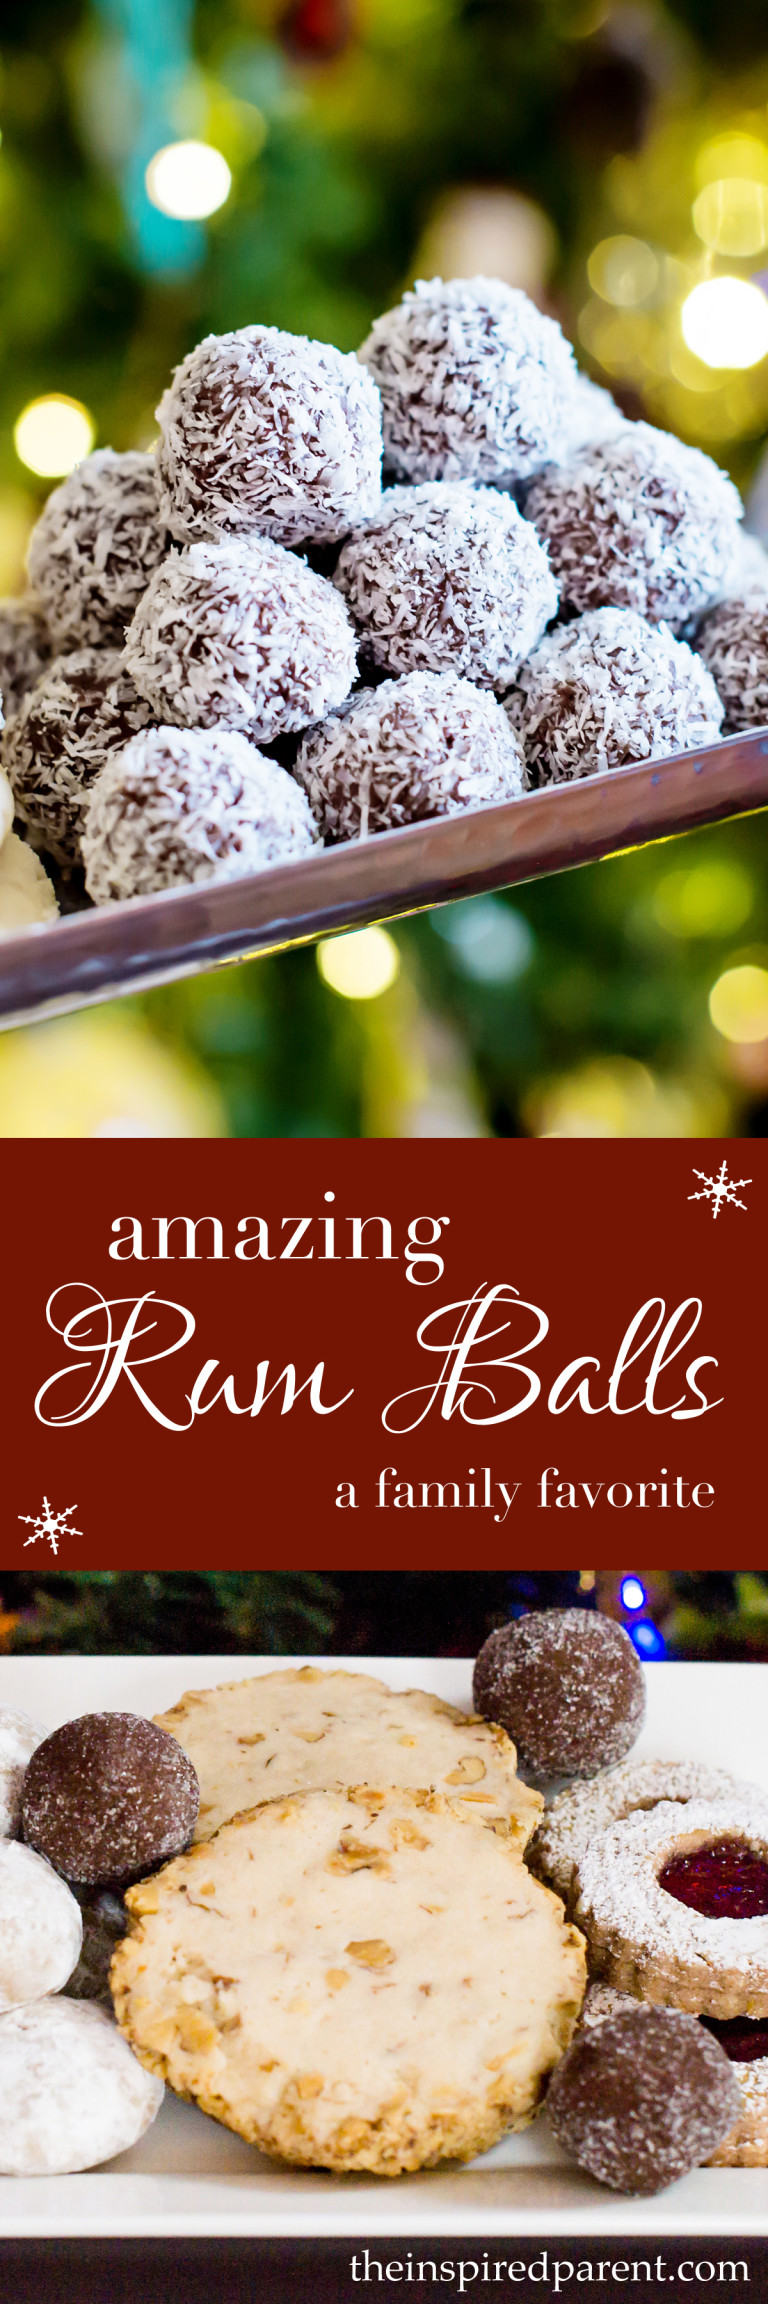 Rum Balls | theinspiredparent.com